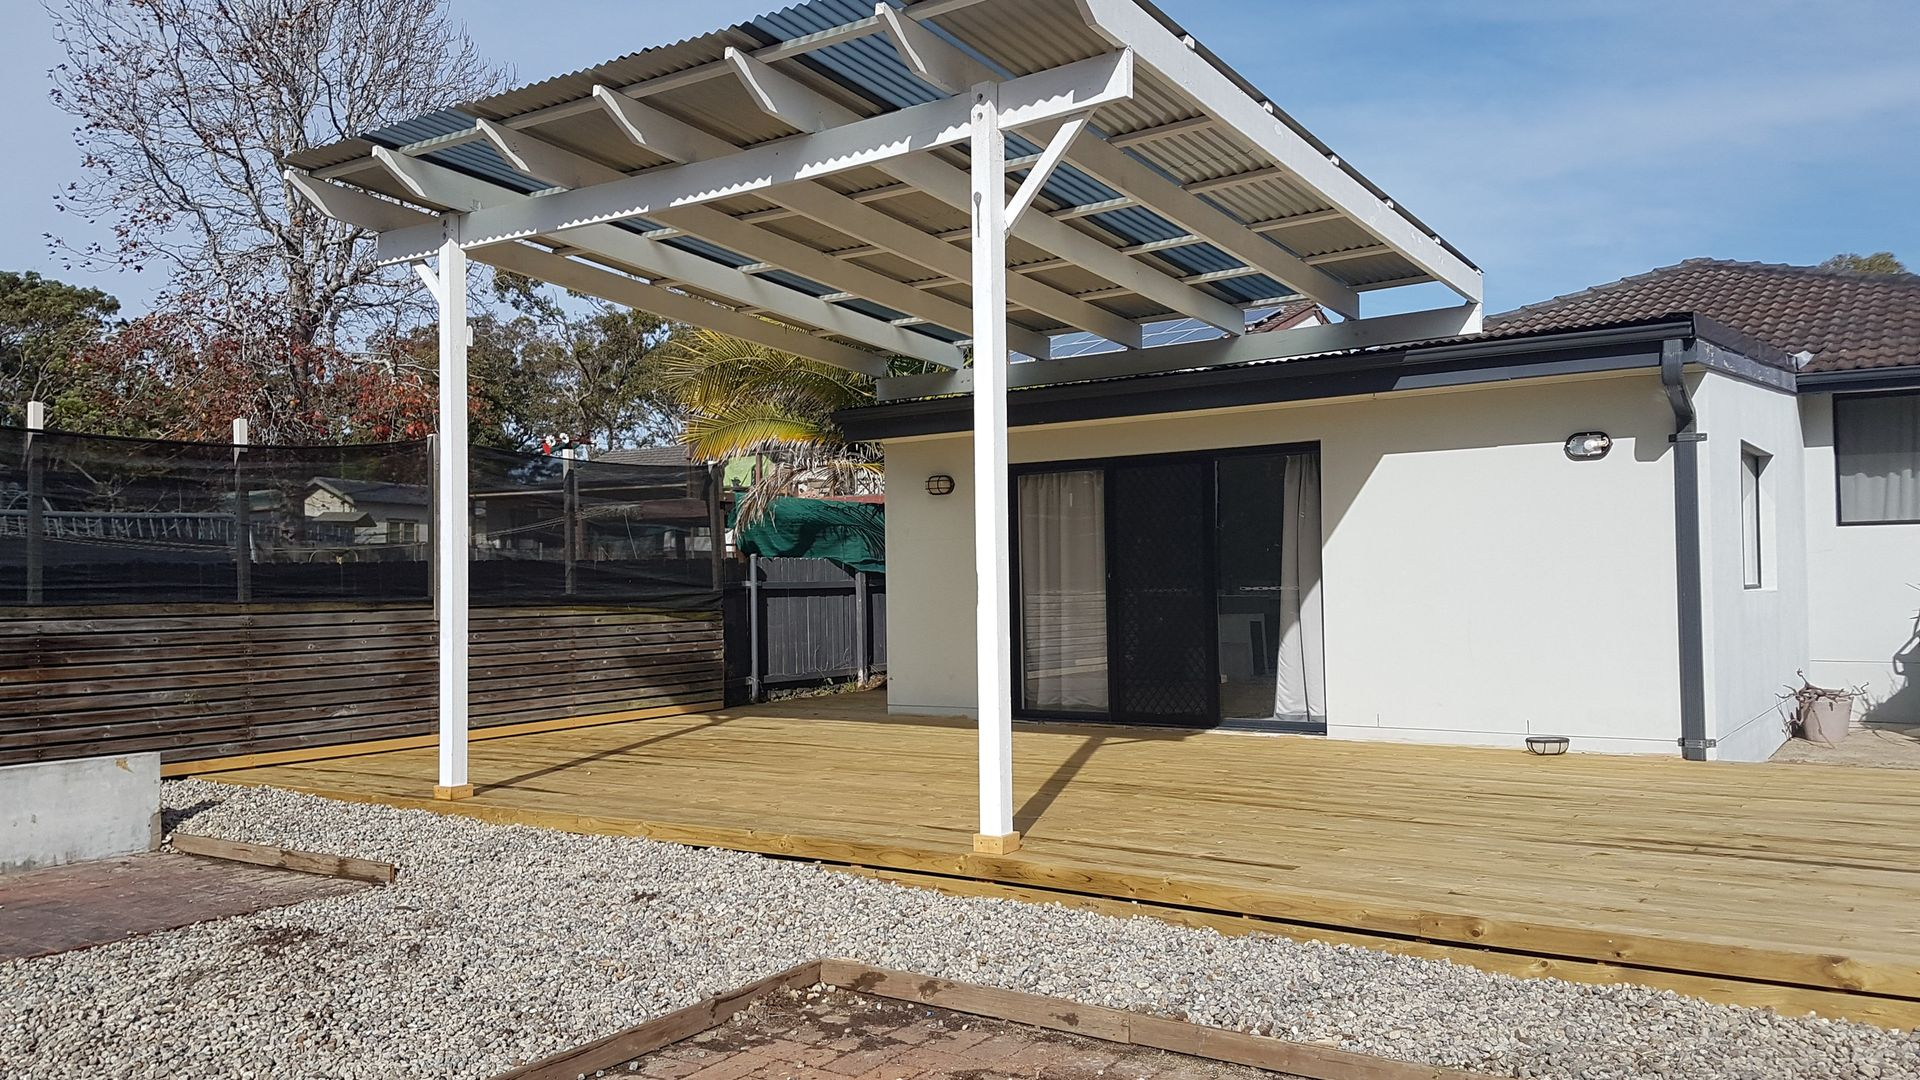 119 Buff Point Ave, Buff Point NSW 2262, Image 1